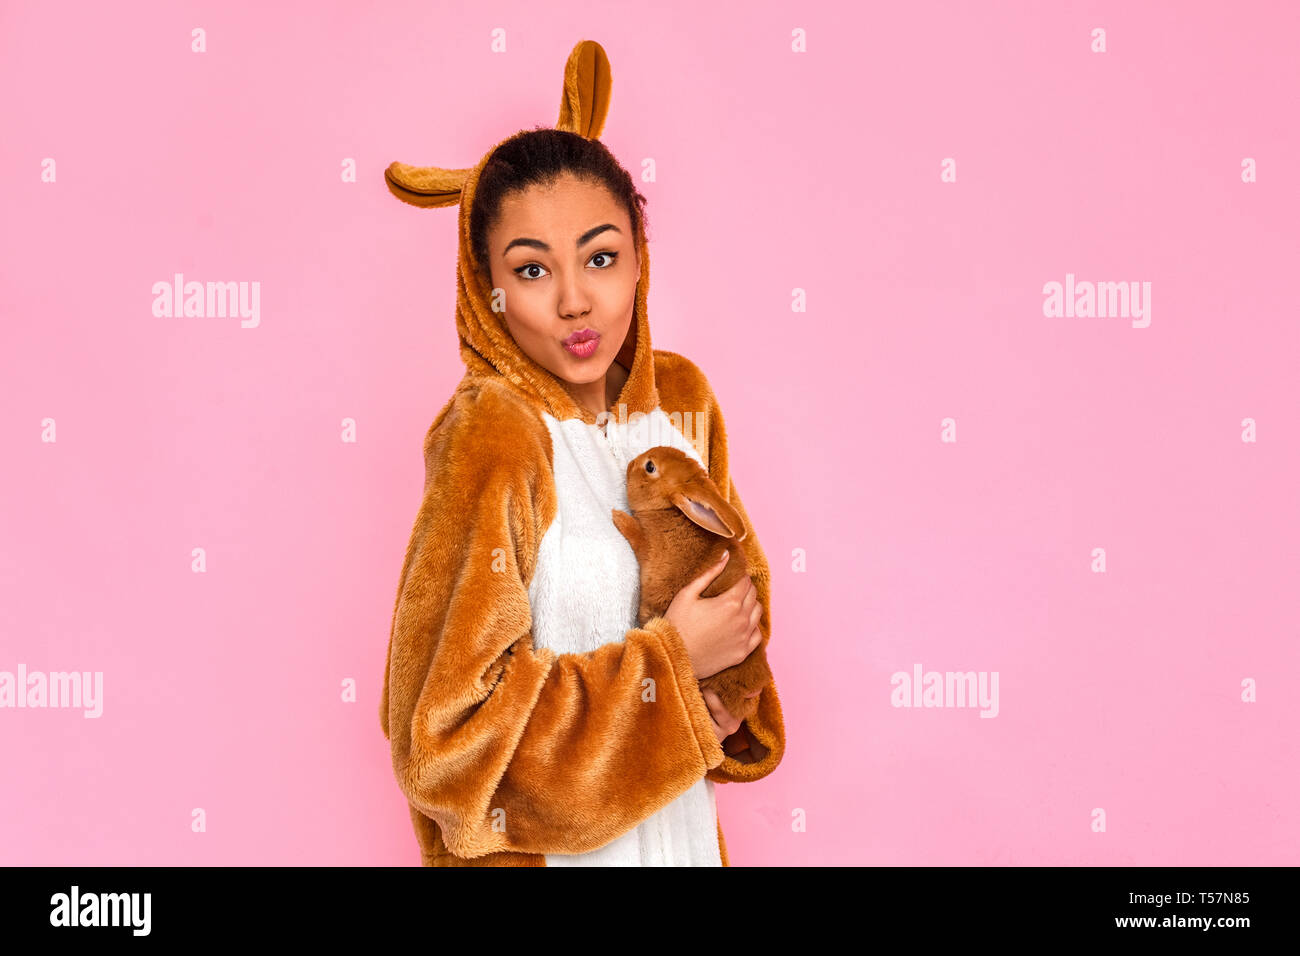 Young woman in bunny kigurumi standing isolated on pink background holding little rabbit looking camera pouting lips cute - Stock Image